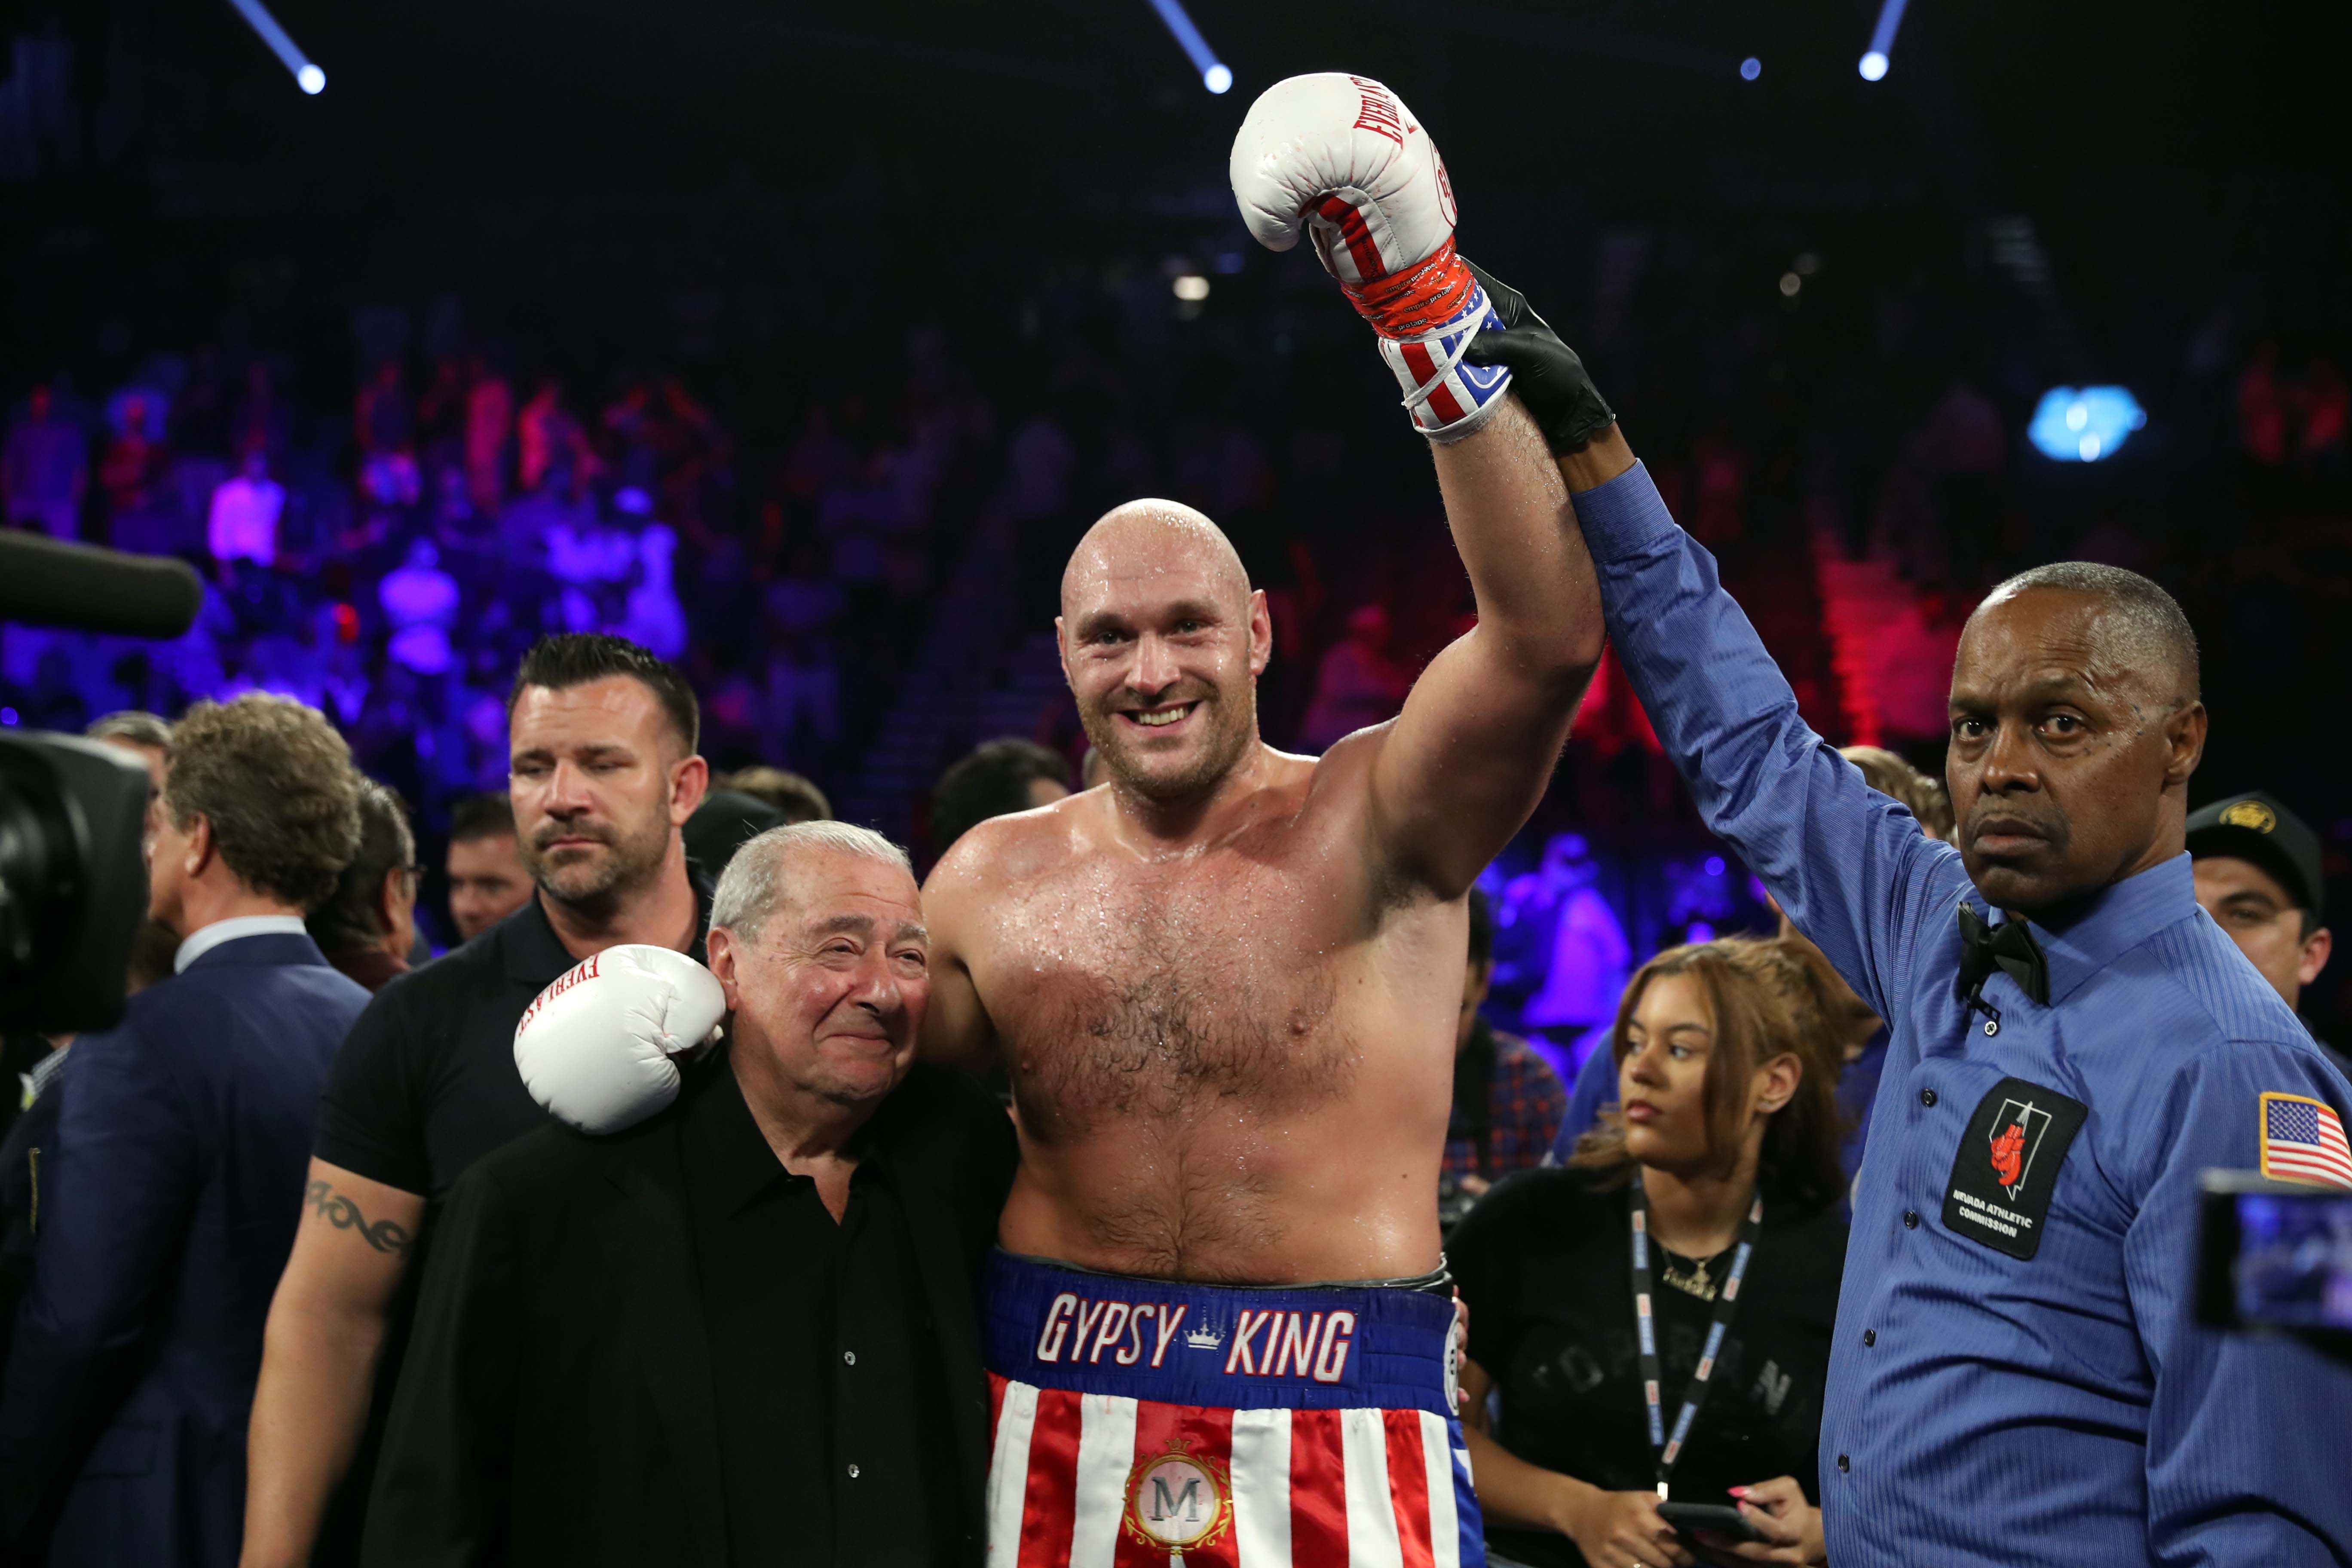 Tyson Fury after winning